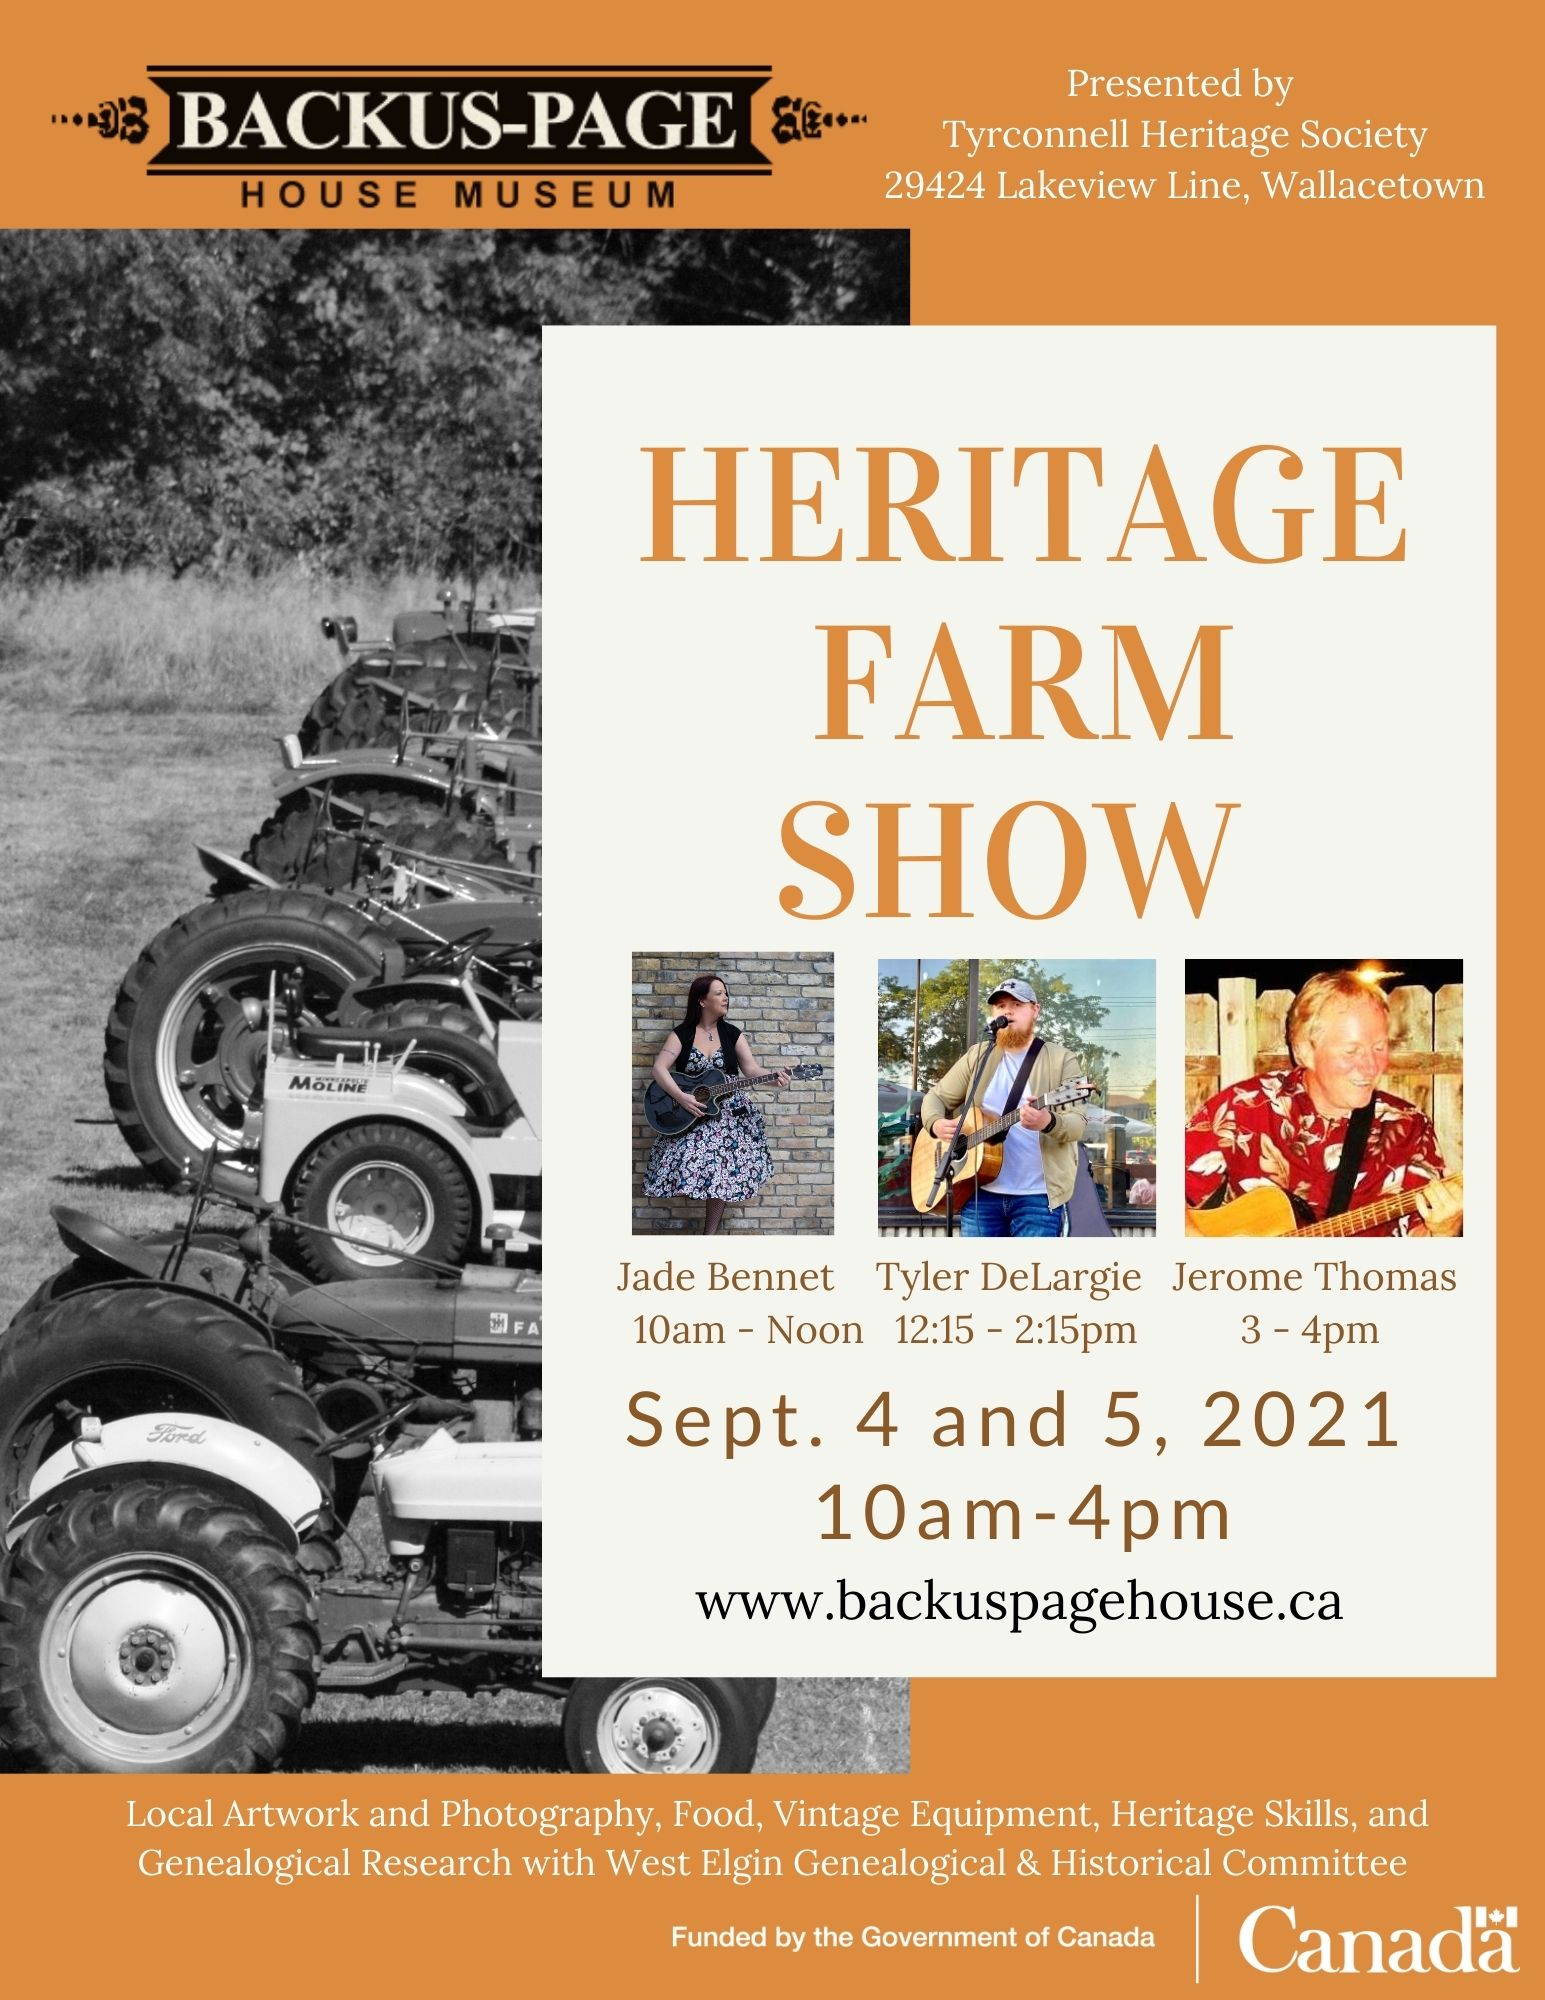 Grand Opening Saturday of the new Agricultural History Centre